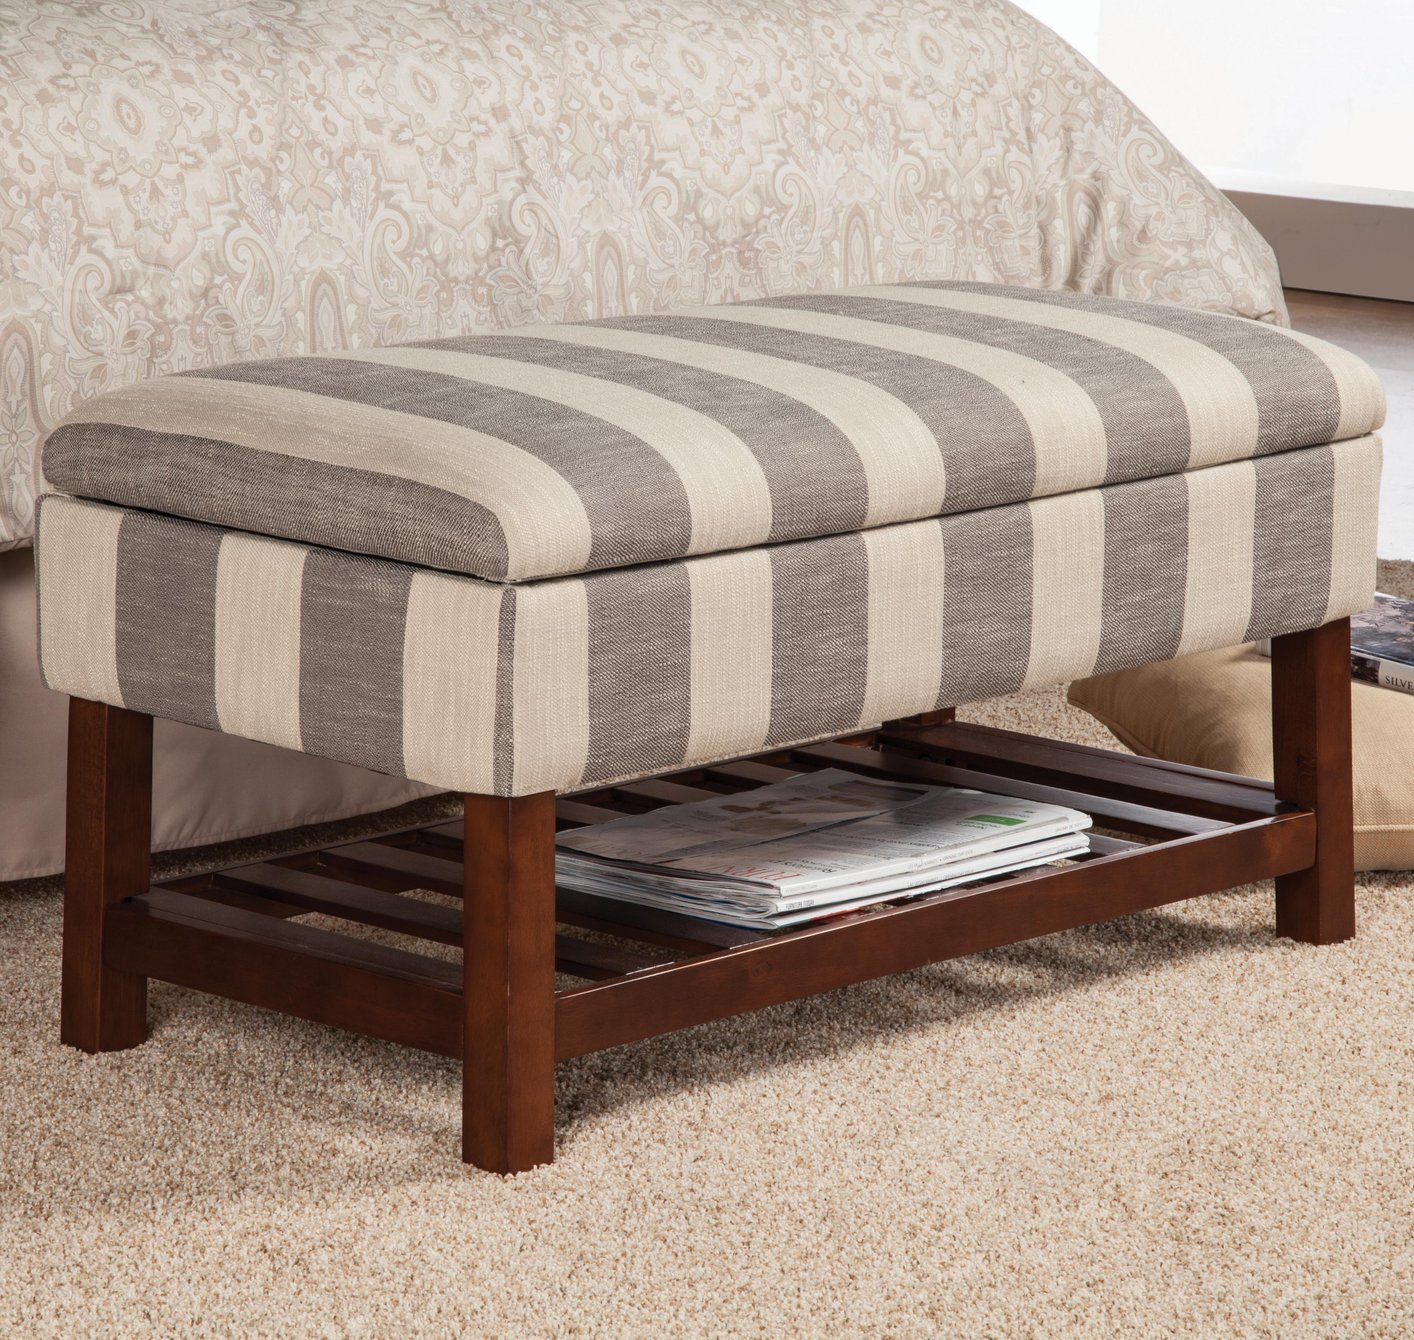 Coaster 500067 Grey Fabric Storage Bench Steal A Sofa Furniture Outlet Los Angeles Ca